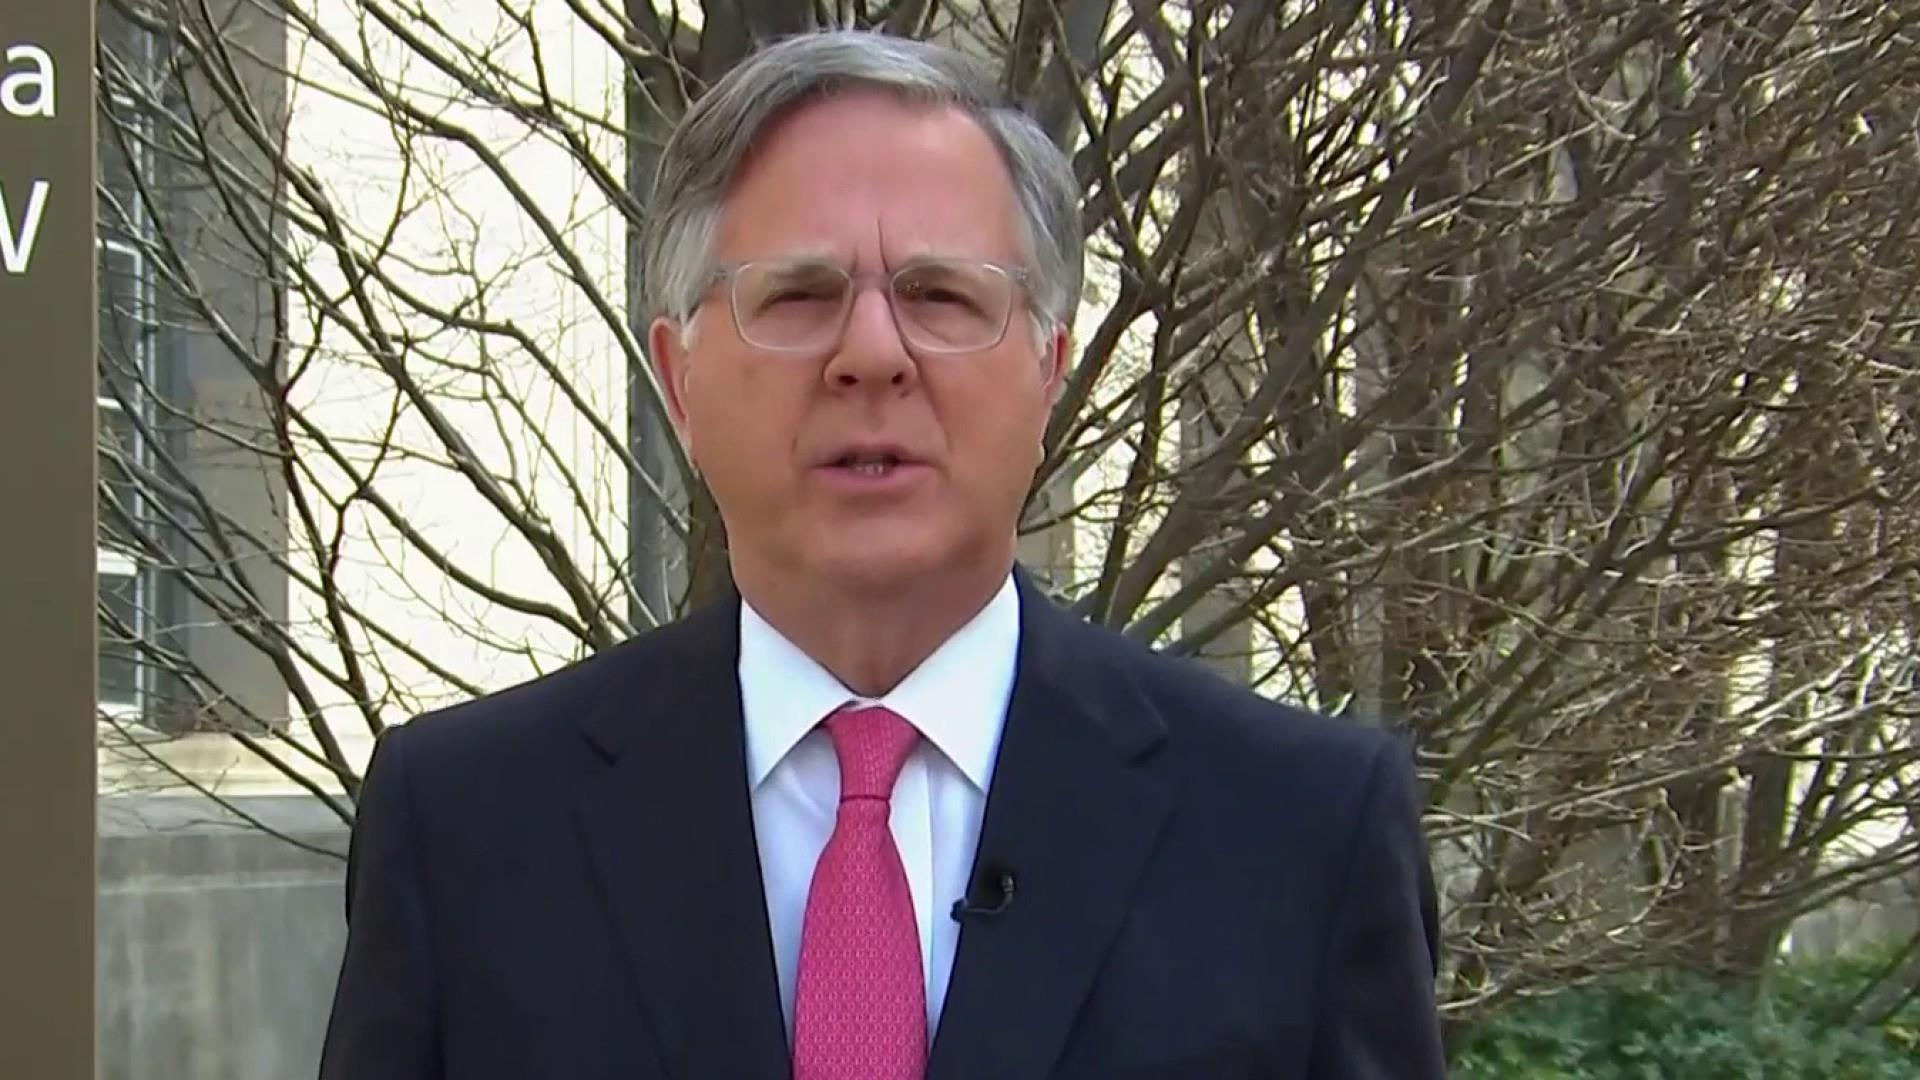 AG on Mueller report: 'Evidence...not sufficient' that Trump obstructed justice